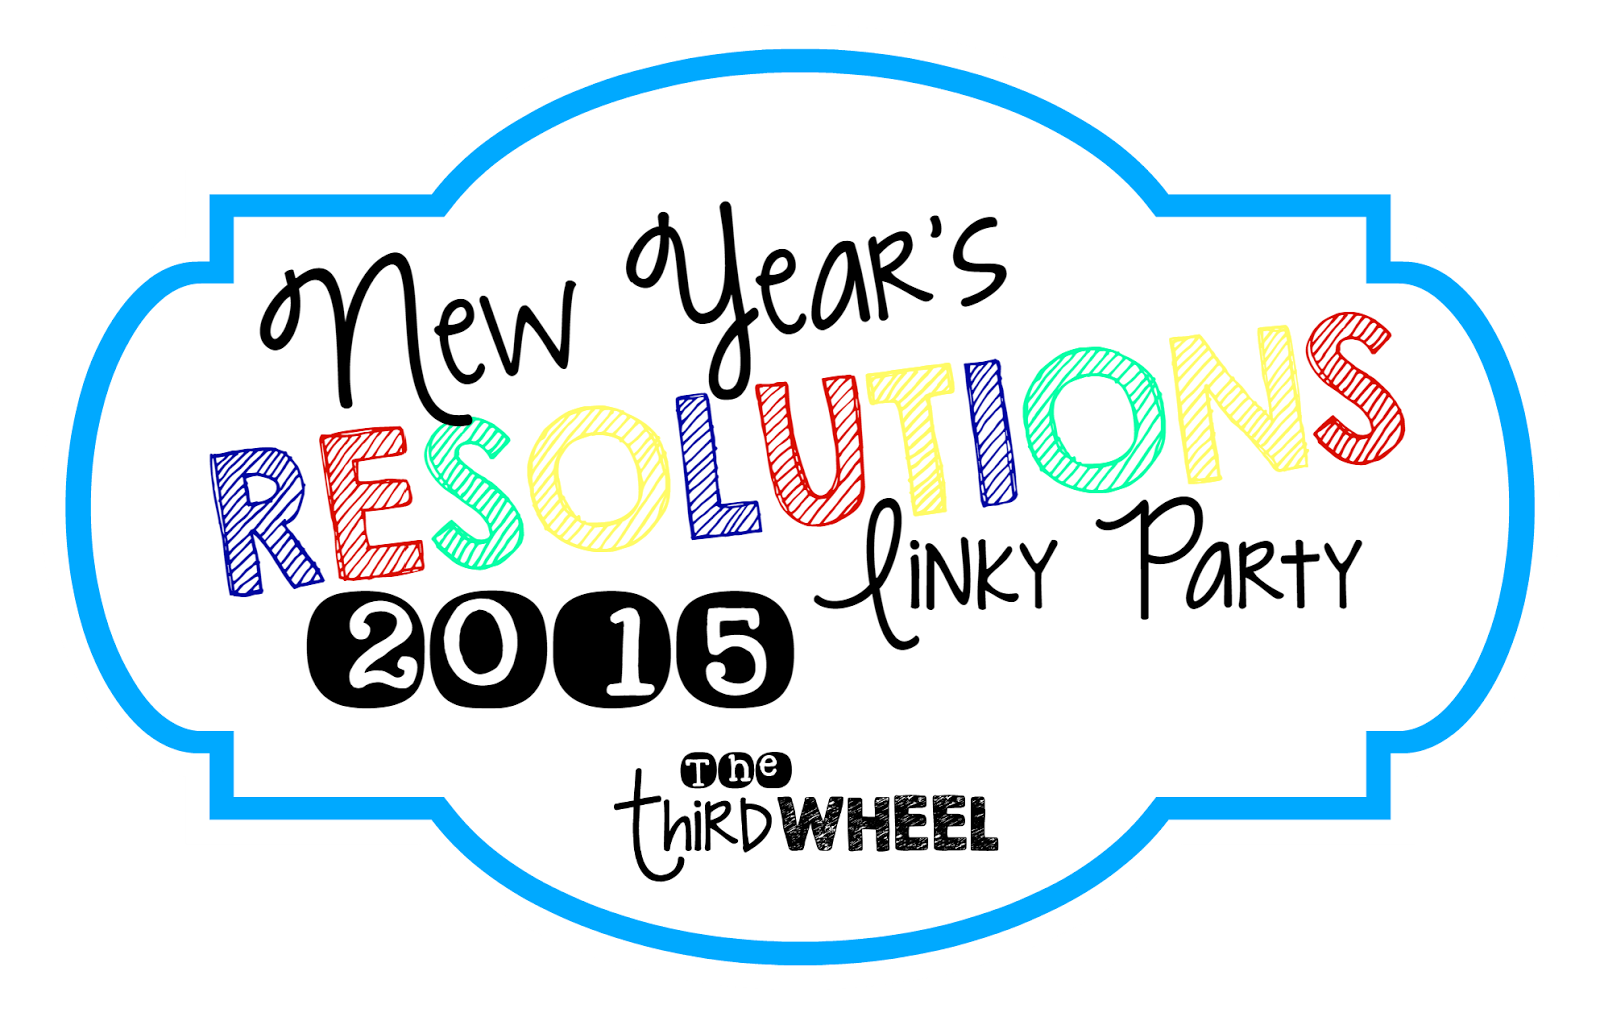 http://thinkingabout3rd.blogspot.com/2014/12/my-new-years-resolutions-linky-party.html